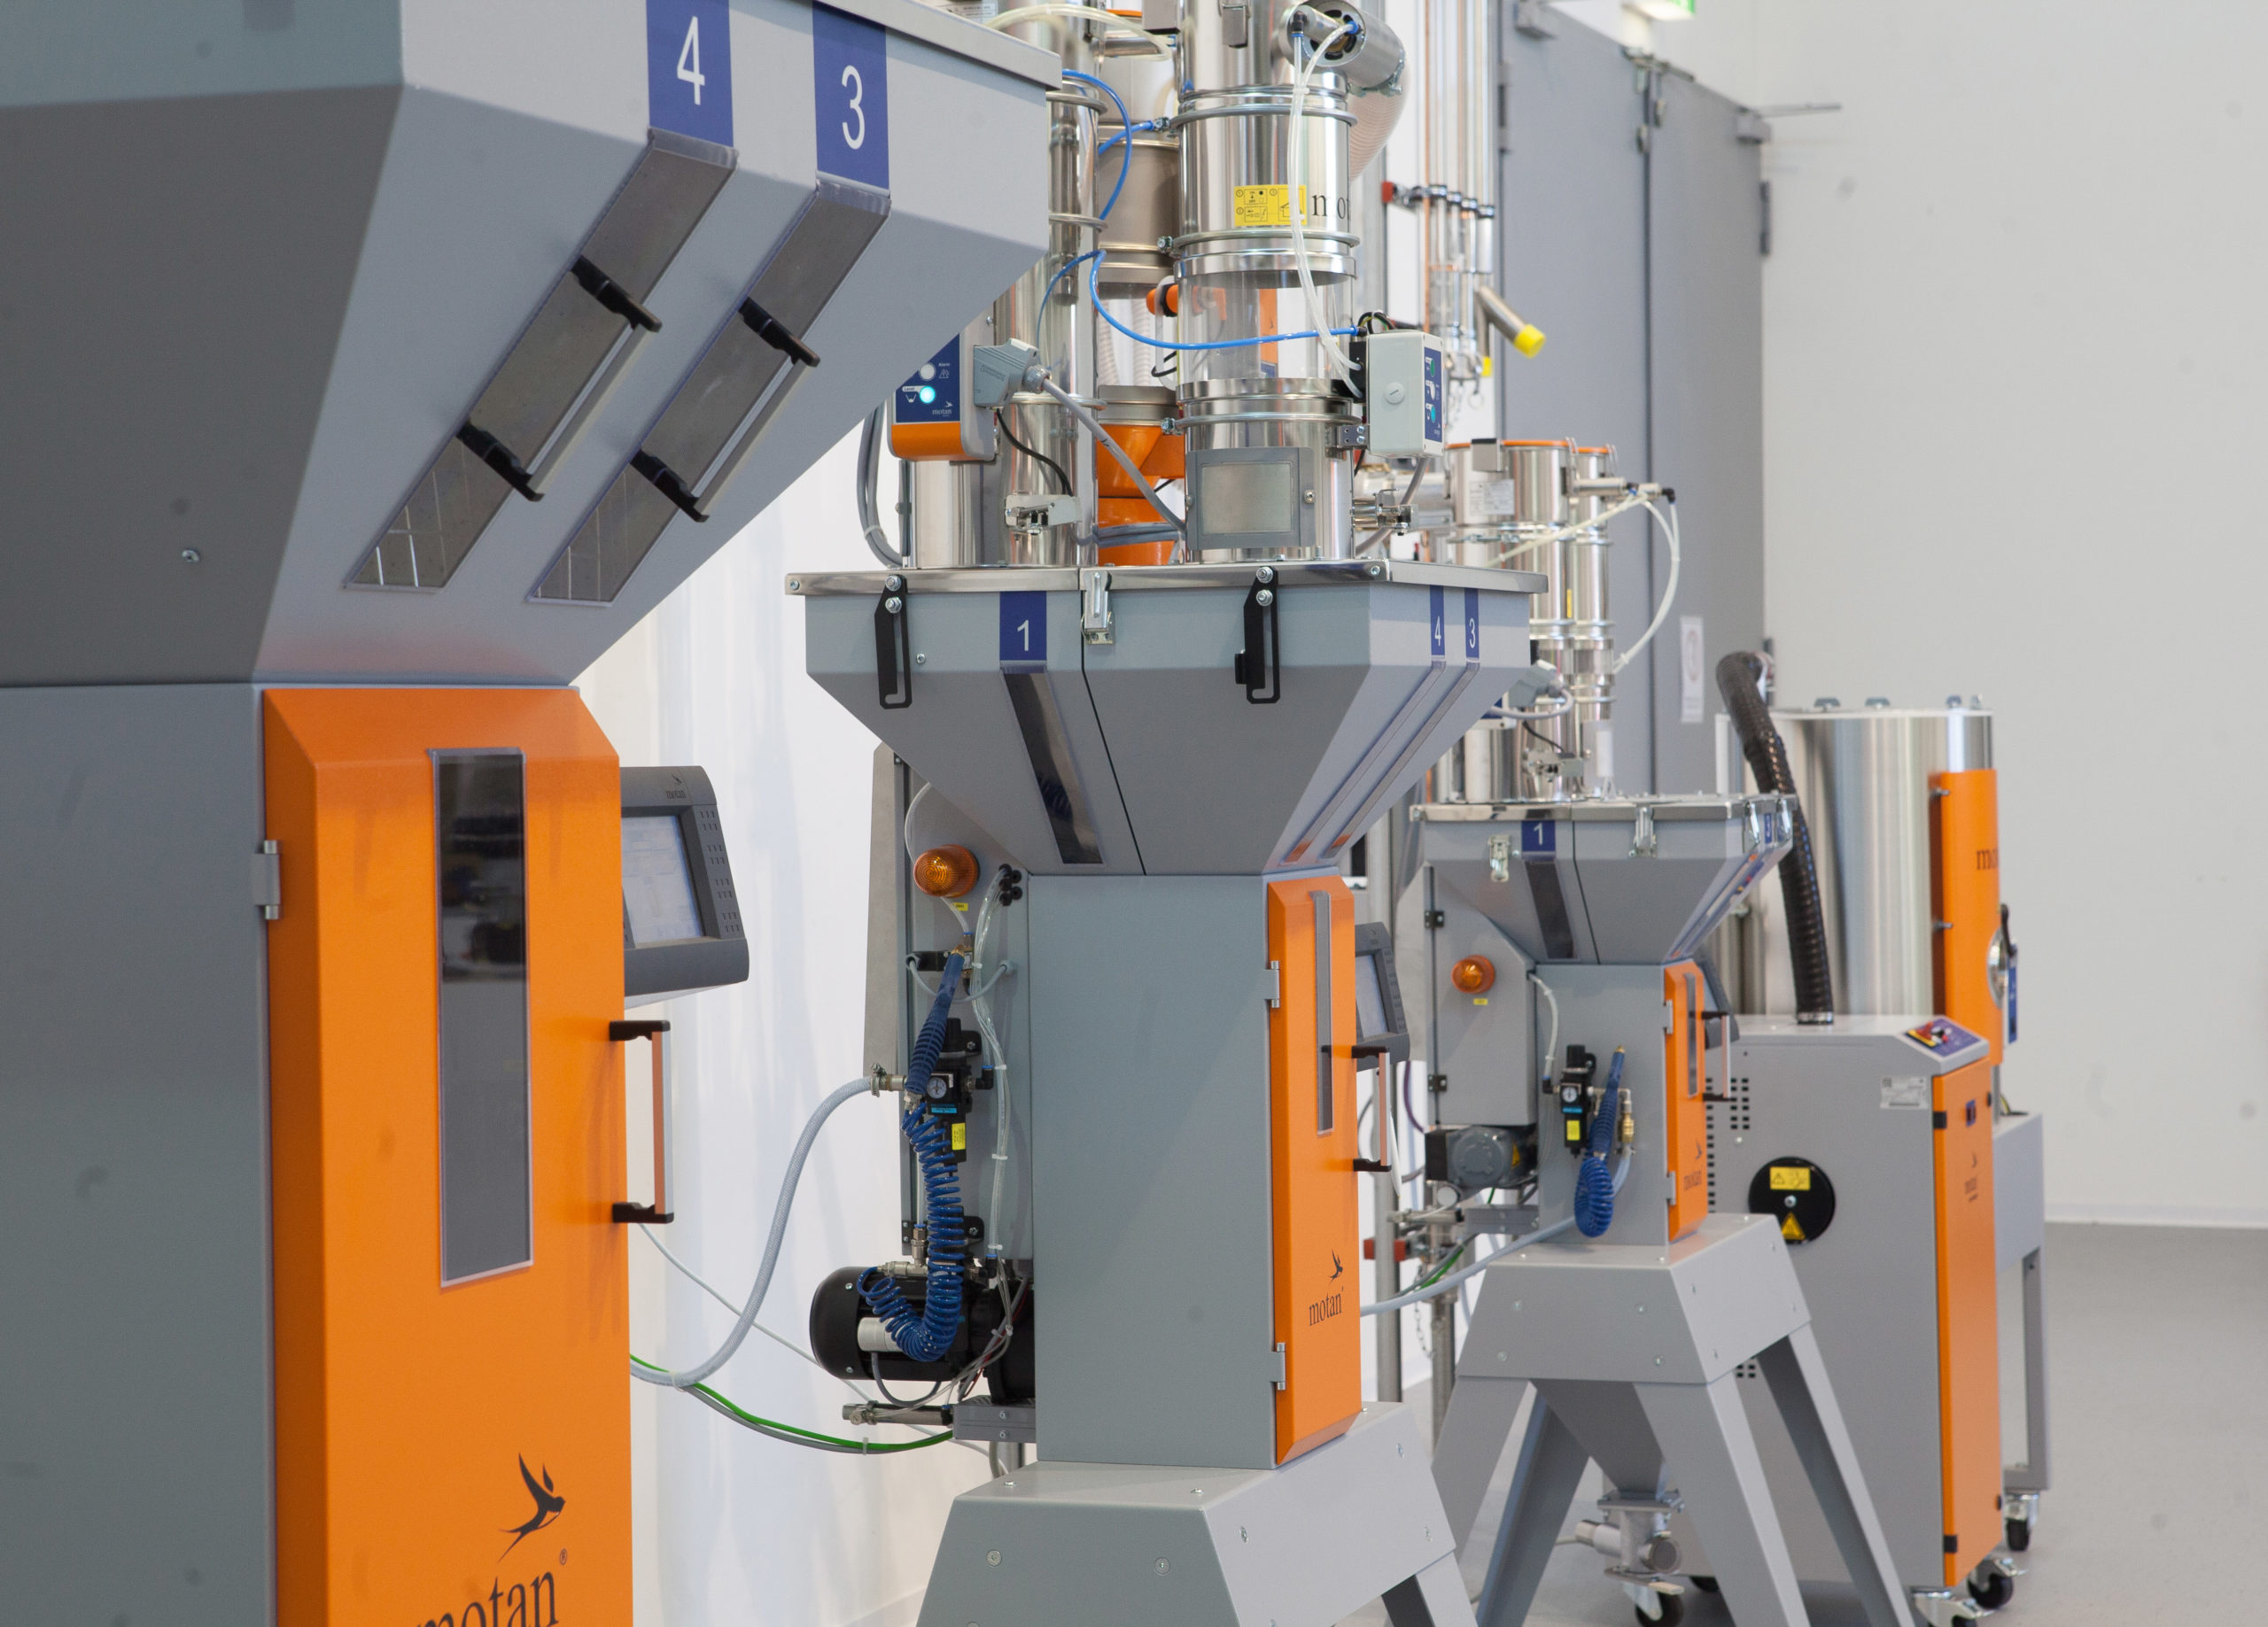 motan GRAVICOLOR Different Sizes With LUXOR-50 | GreenTech Machinery